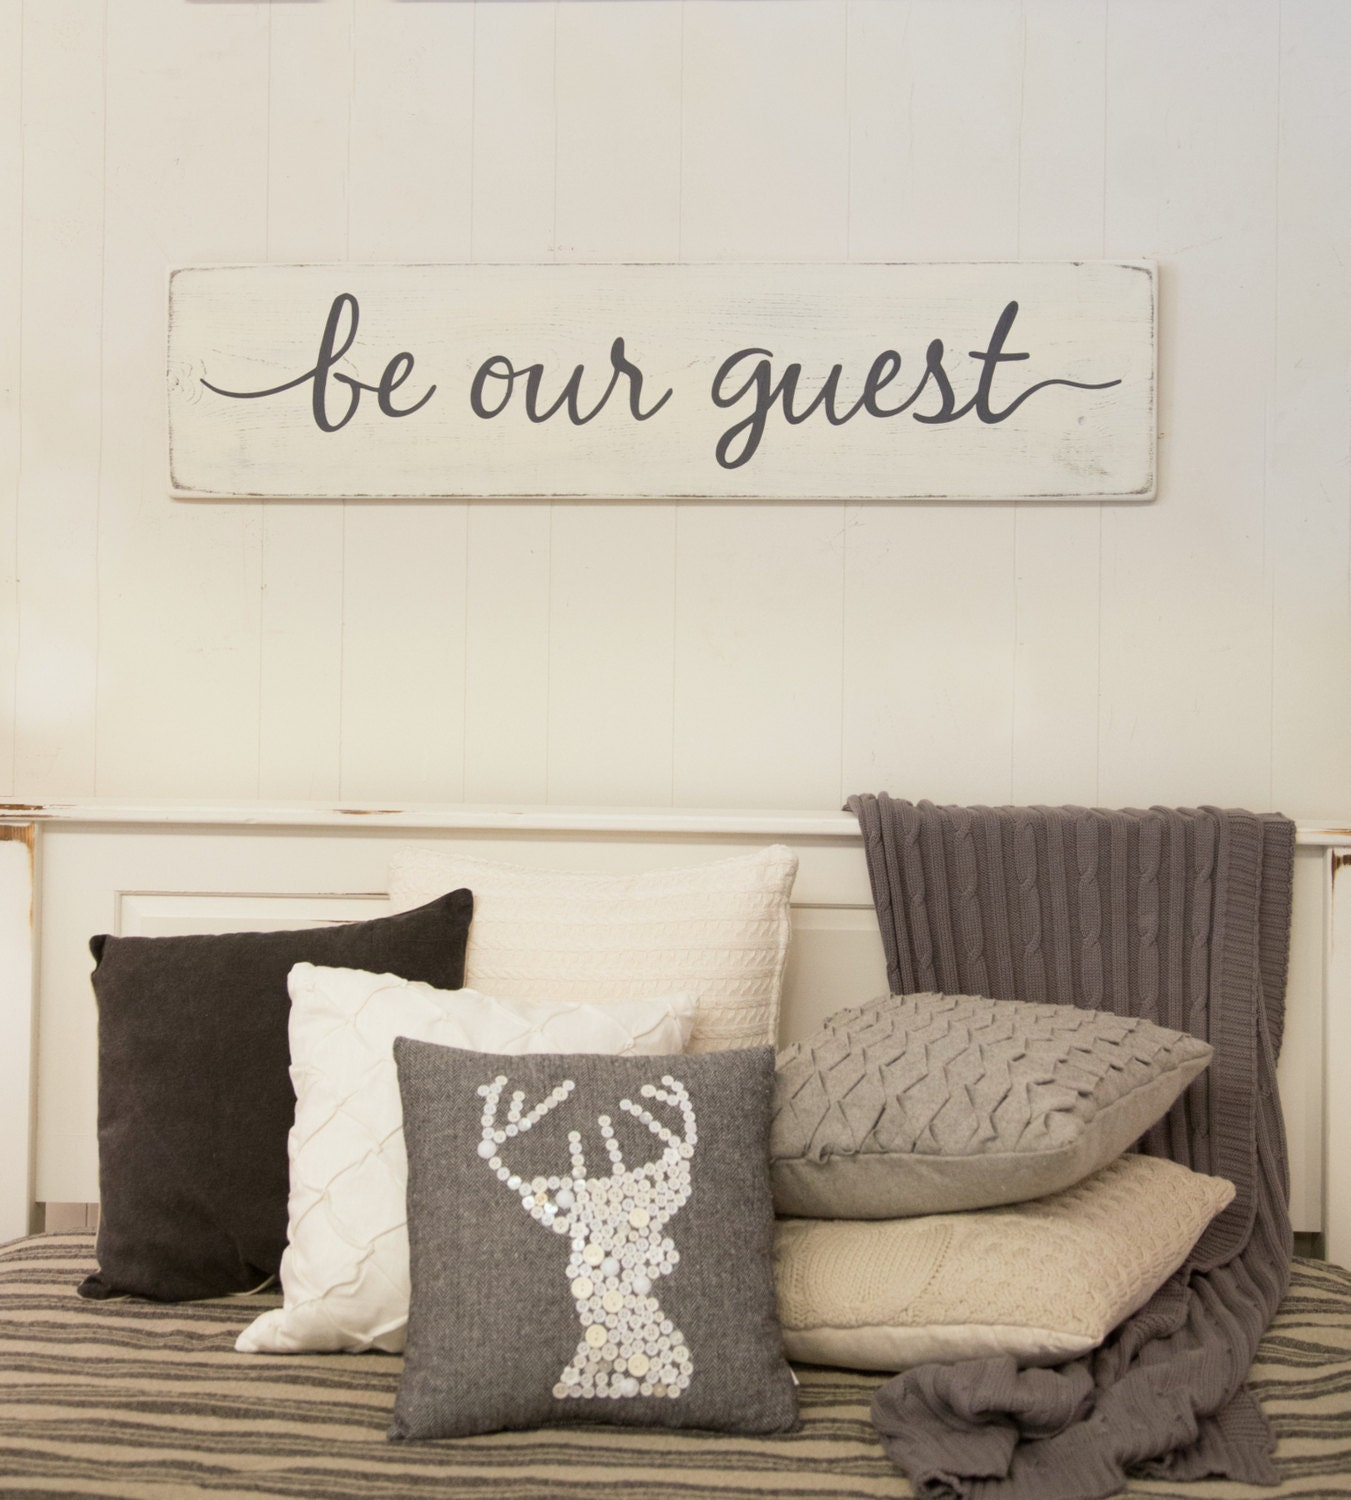 Be Our Guest Sign Guest Room Sign Bedroom Rustic Wood. Java Development Kit Download. Skin Acne Scars Treatment Cure Auto Insurance. Website Transaction Monitoring. Drexel Requirements For Admission. Internet Service Providers In Memphis Tn. Moving And Storage Northern Virginia. 26 Cubic Foot Refrigerator Premier Home Loans. Vmware Monitoring Tools Cell Phone Card Swipe